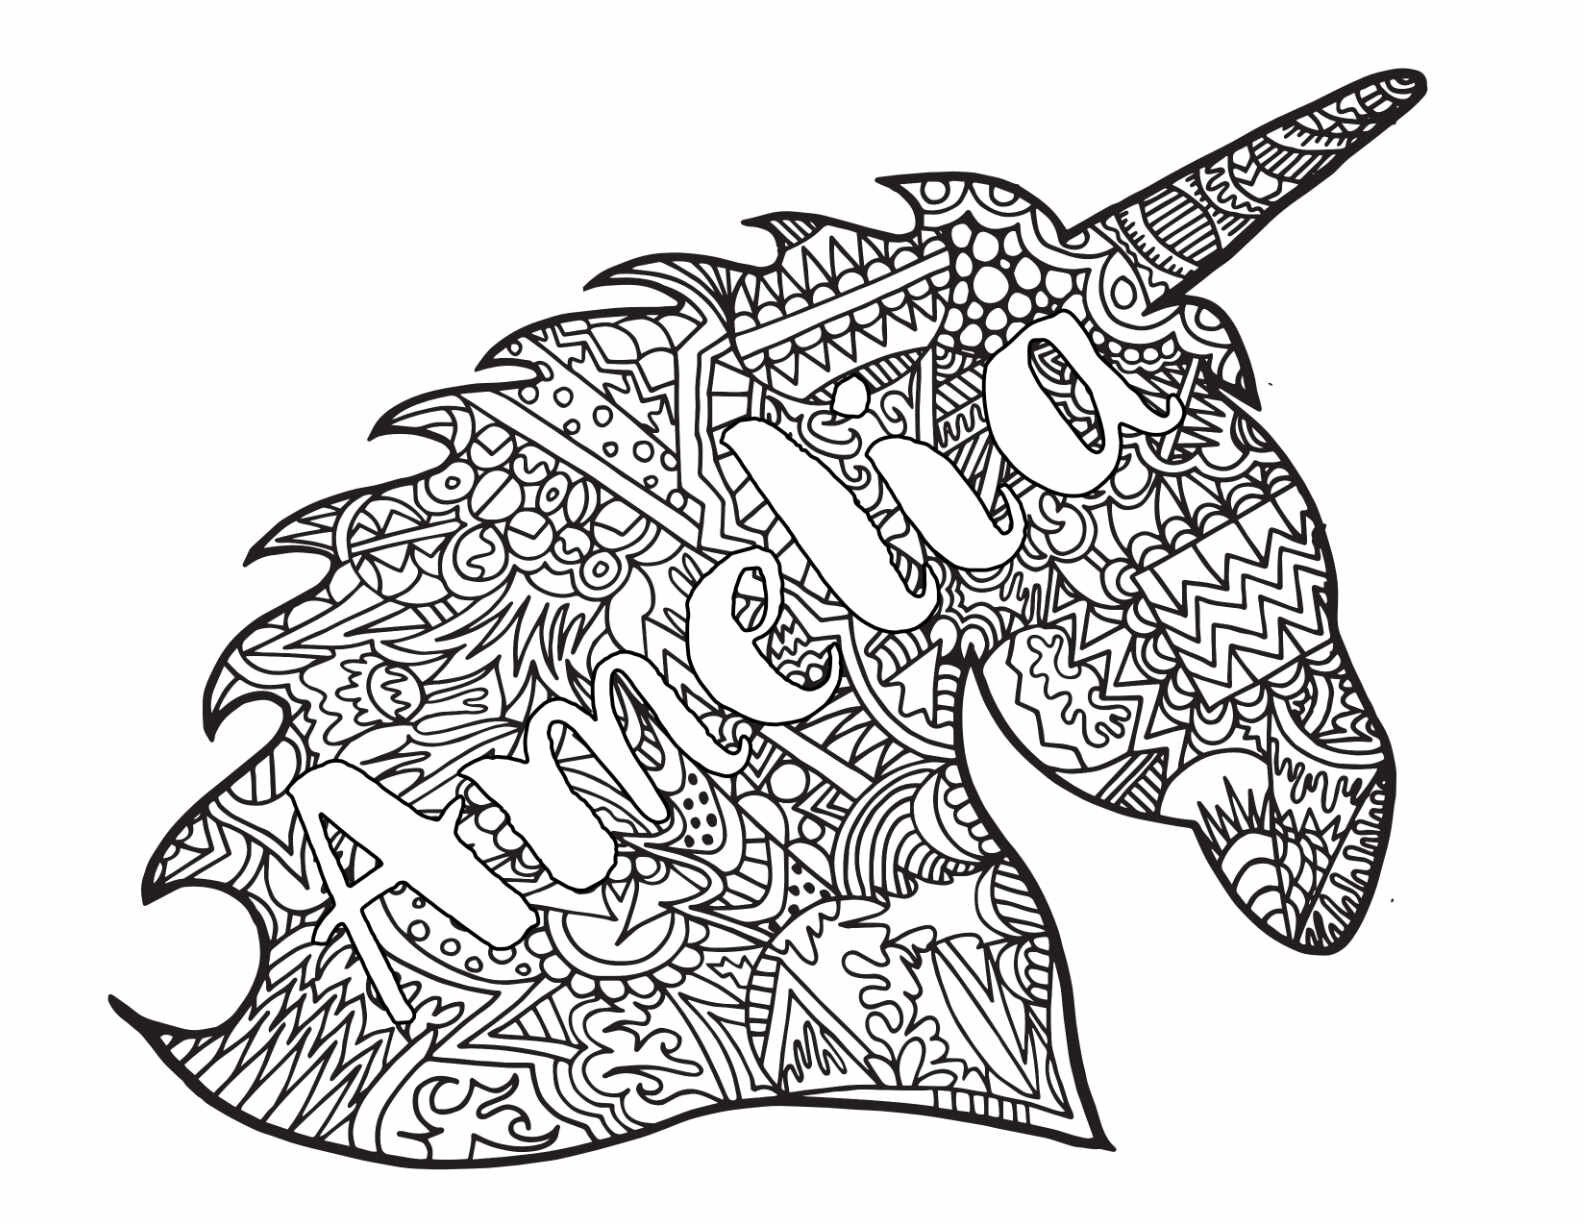 2 Amelia Free Coloring Pages Uicorn Classic Doodle Free